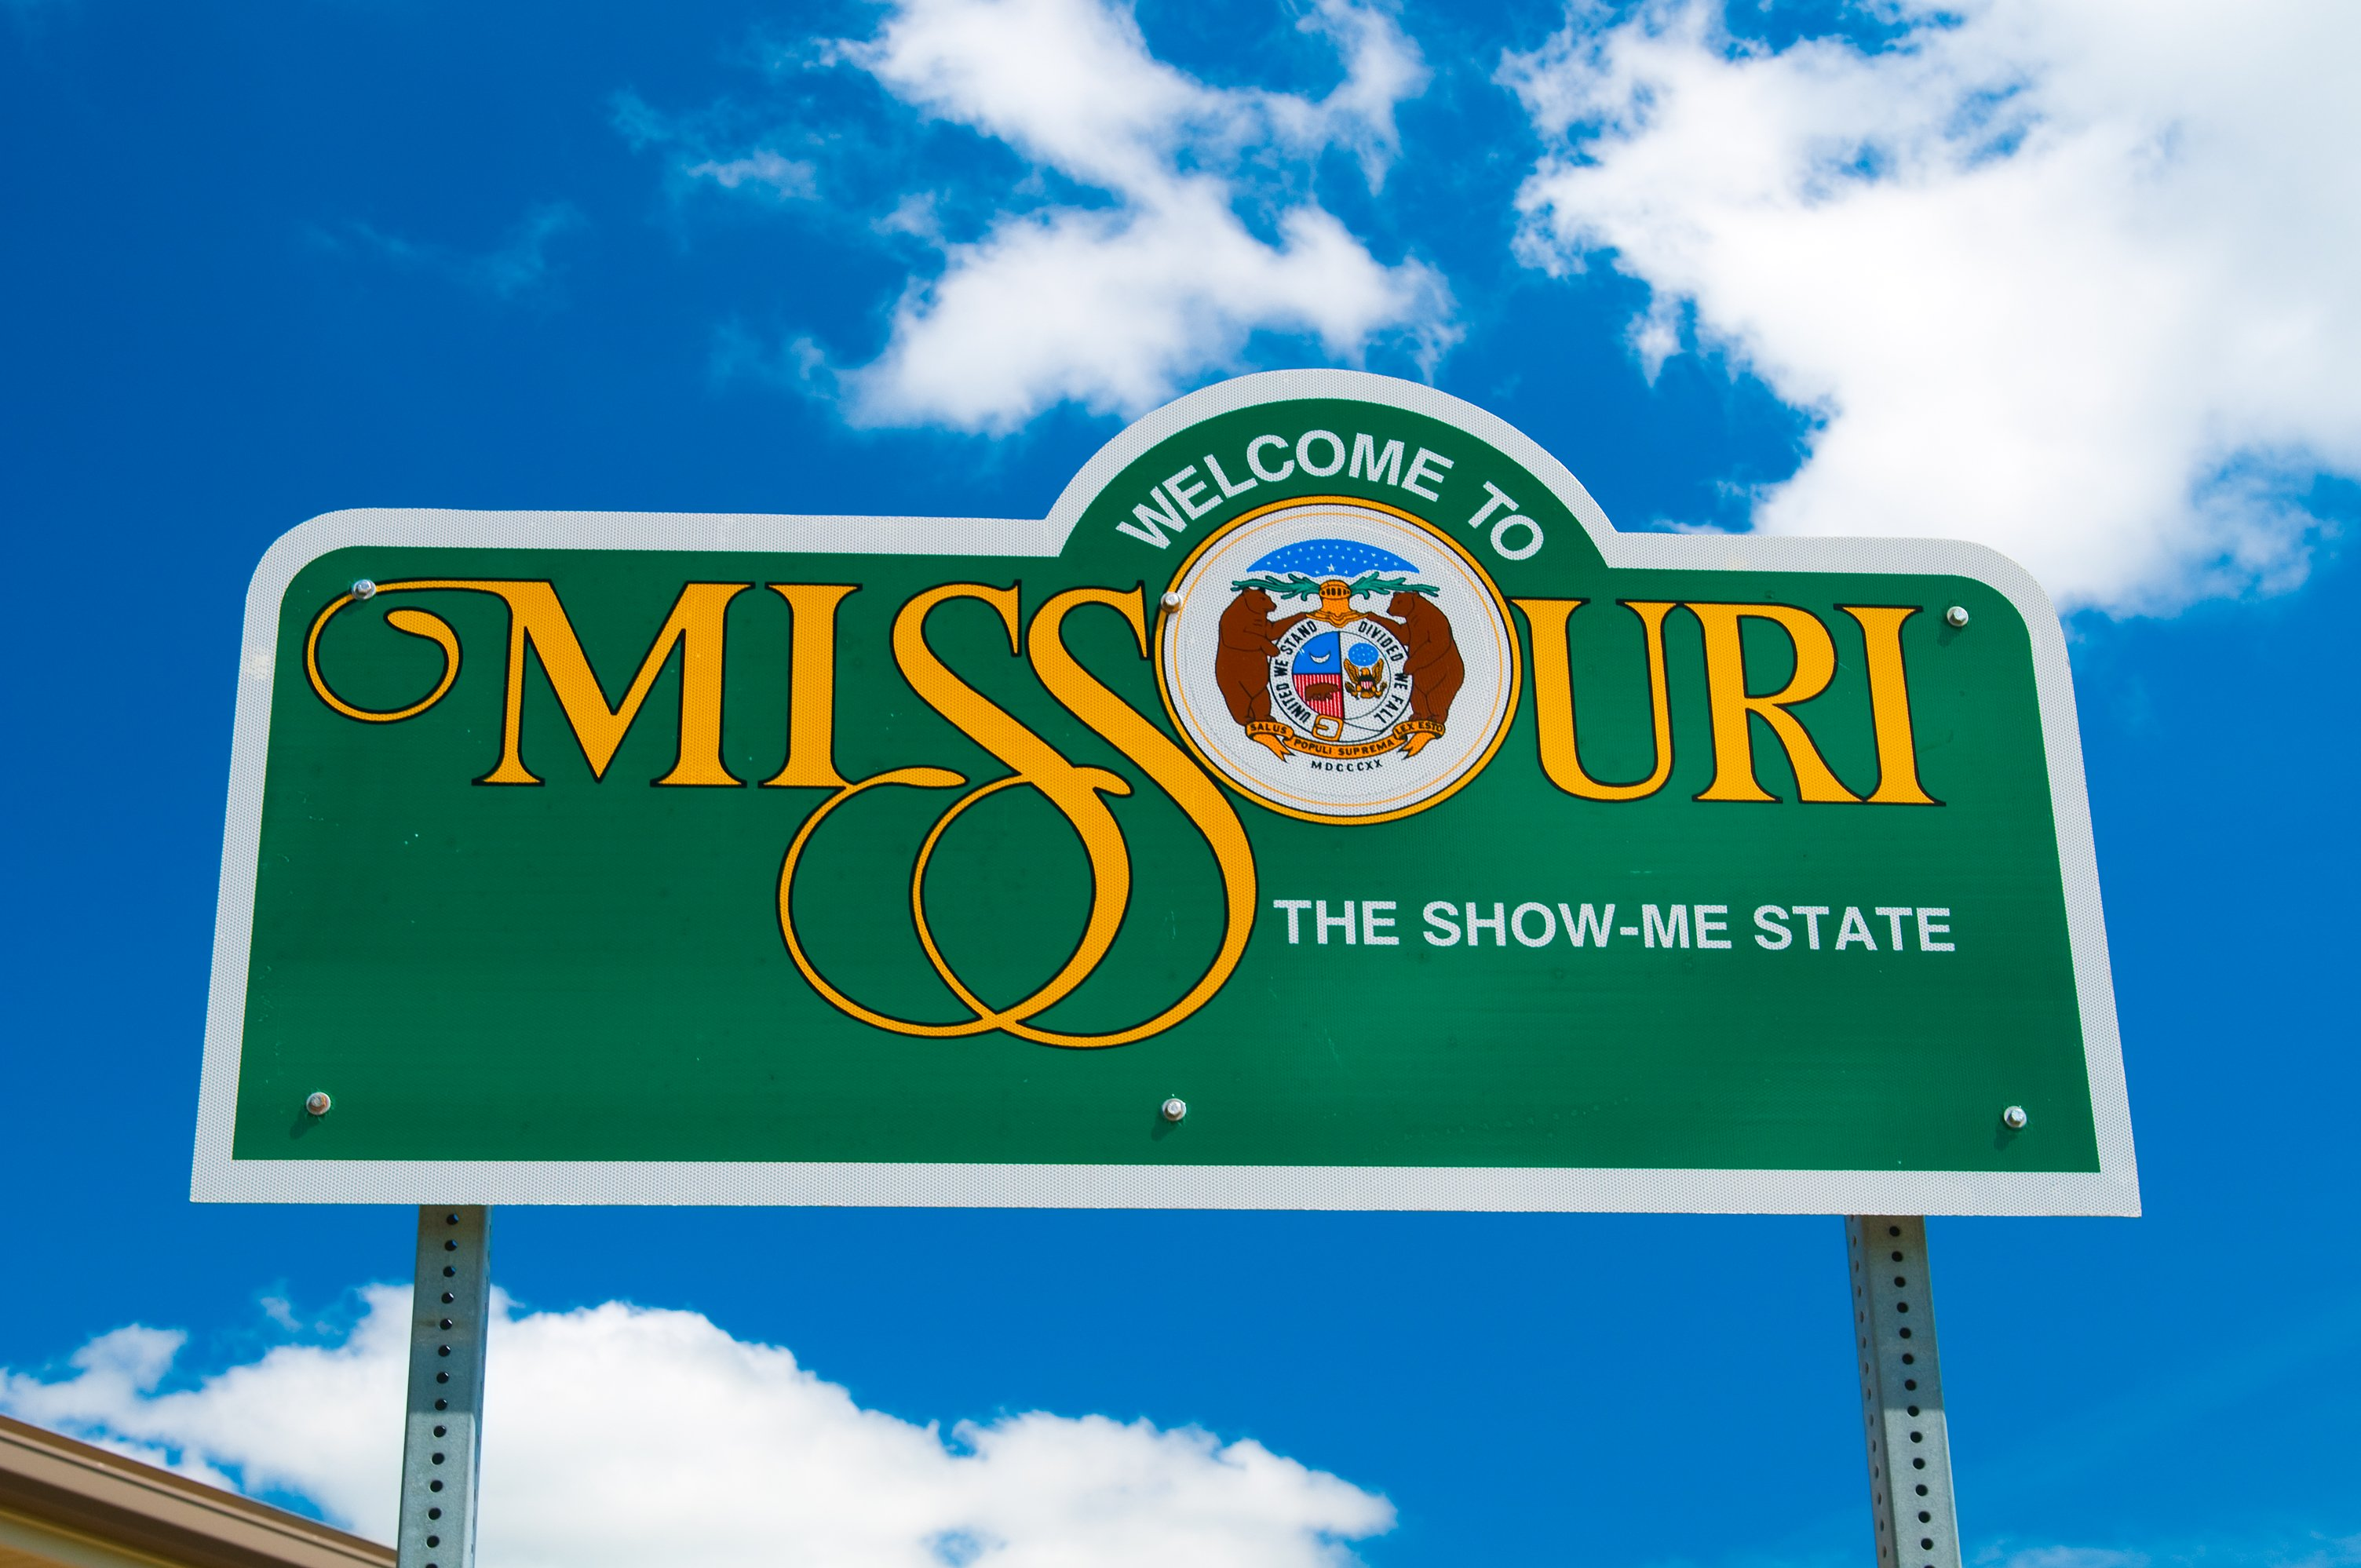 Slide 26 of 51: Missouri is bordered by eight states, making it the most neighborly state in the country along with Tennessee.